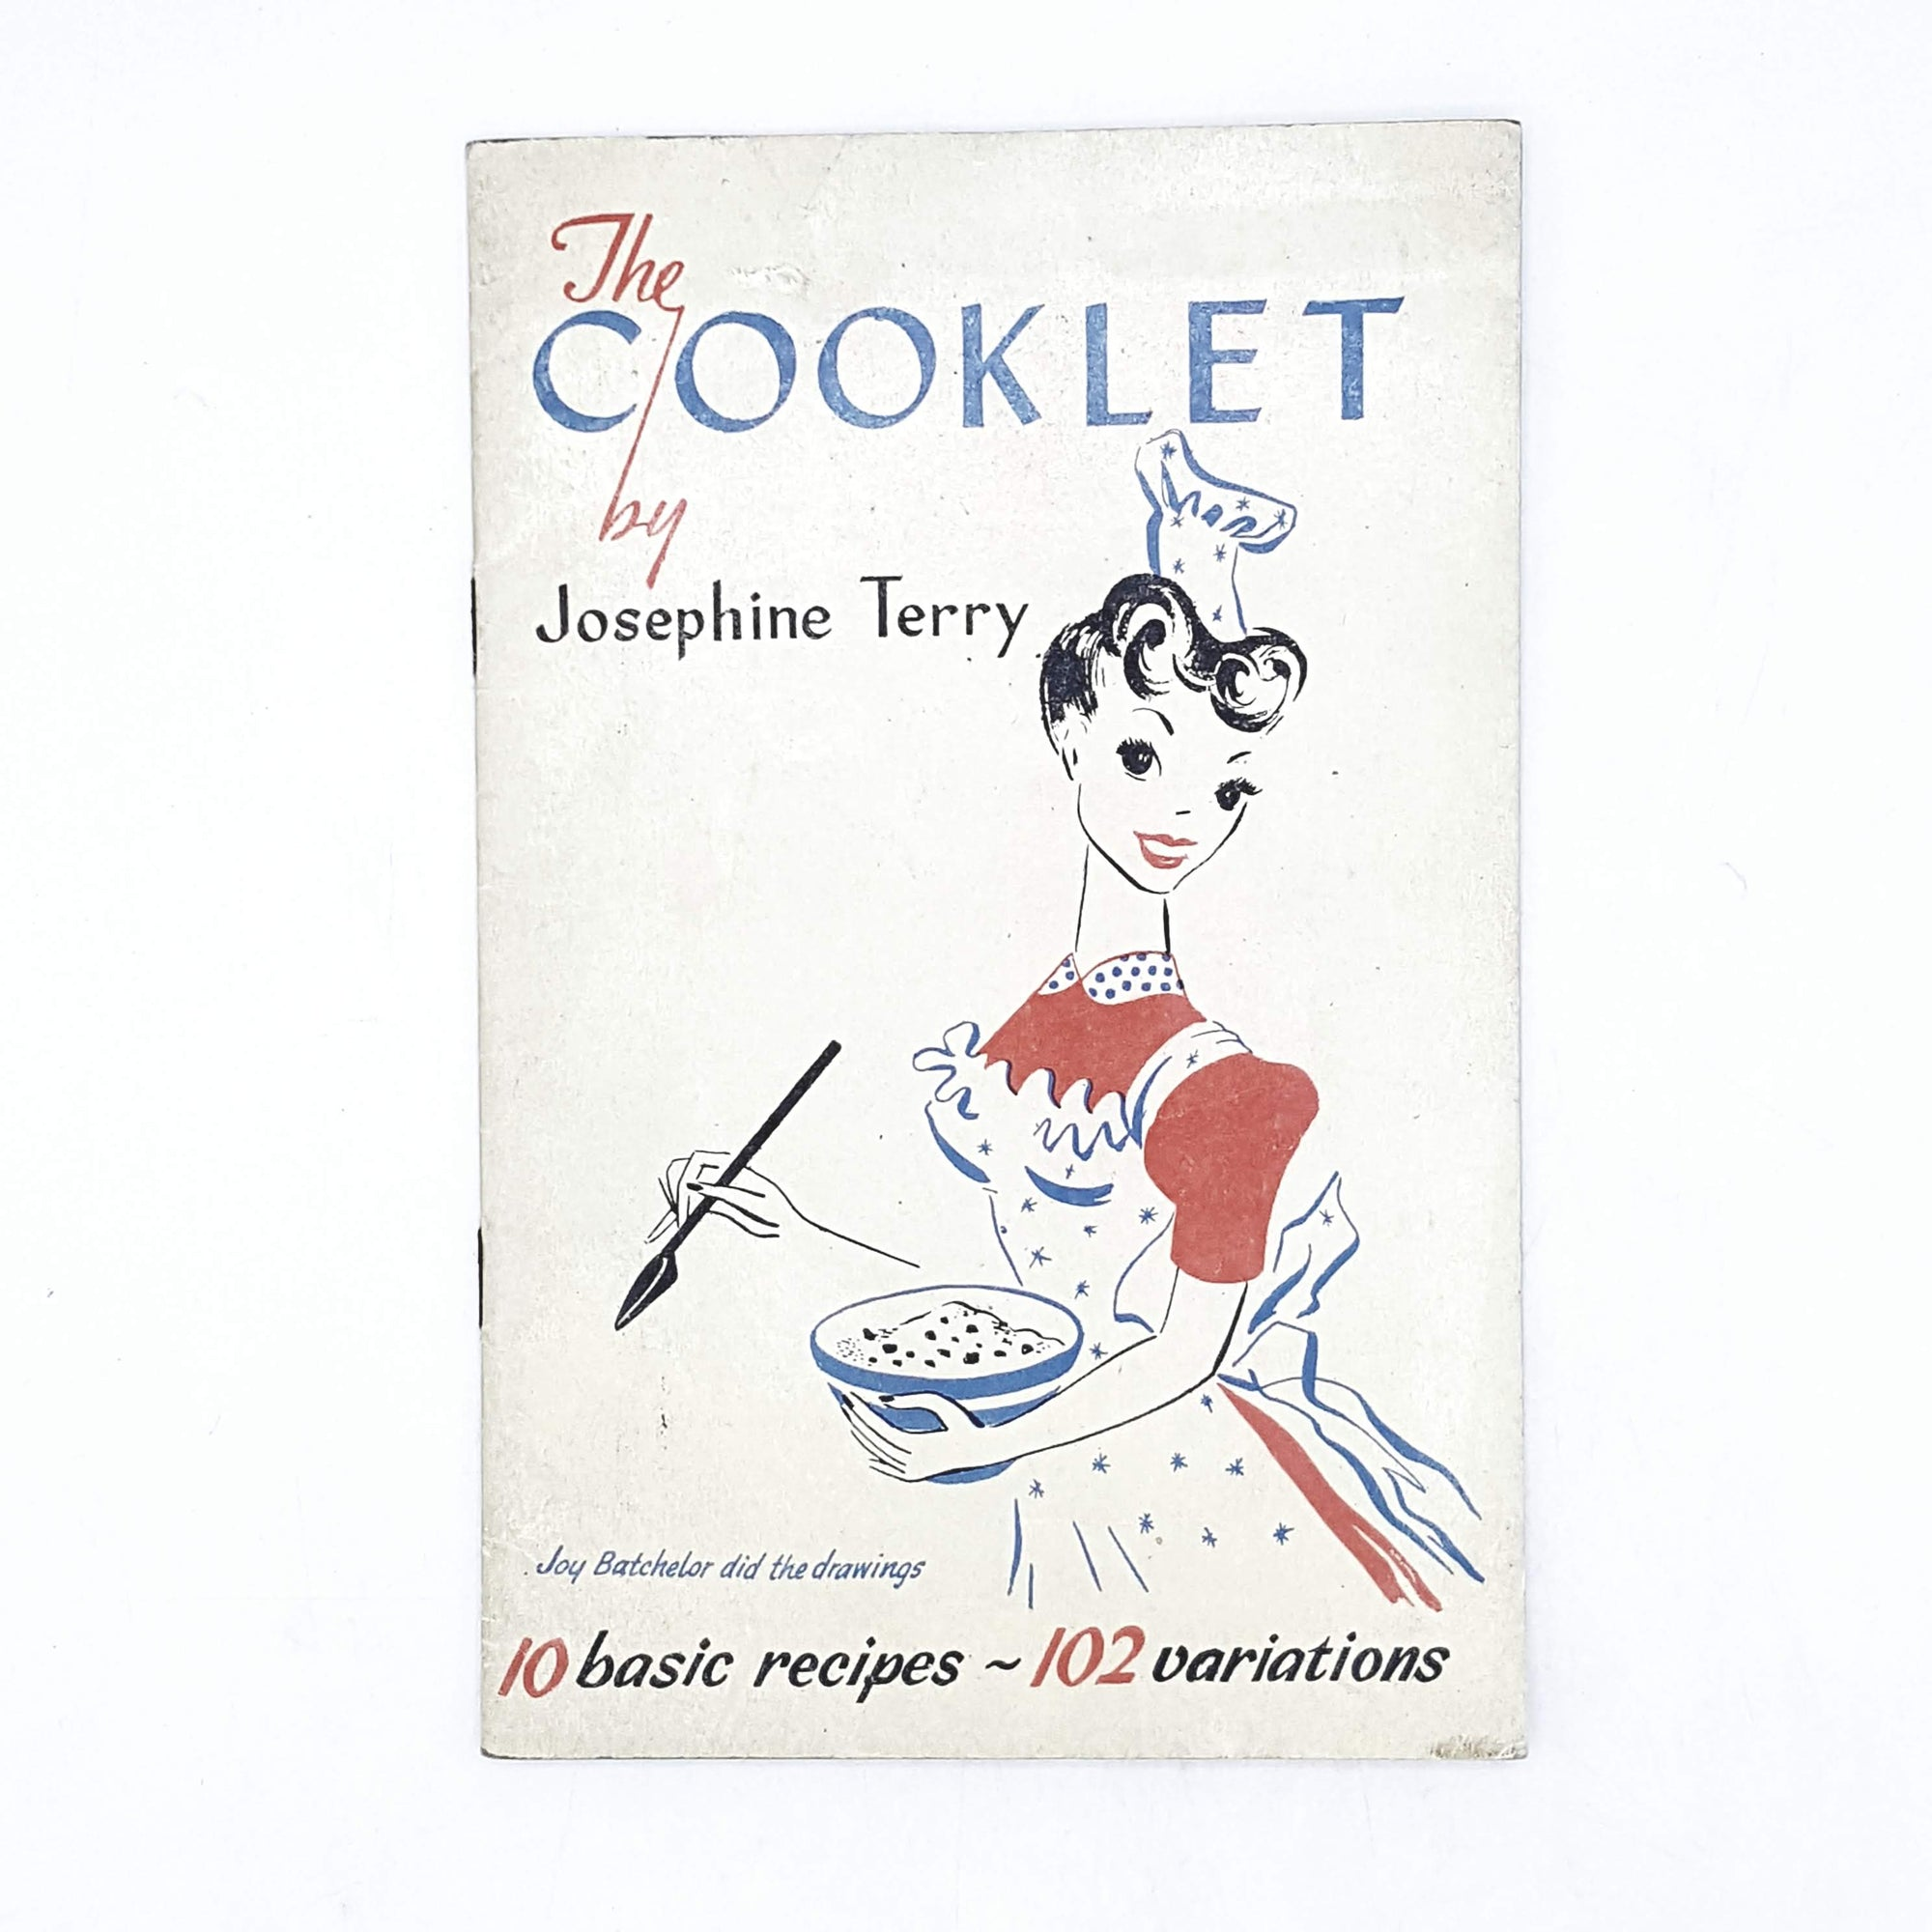 The Cooklet by Josephine Terry